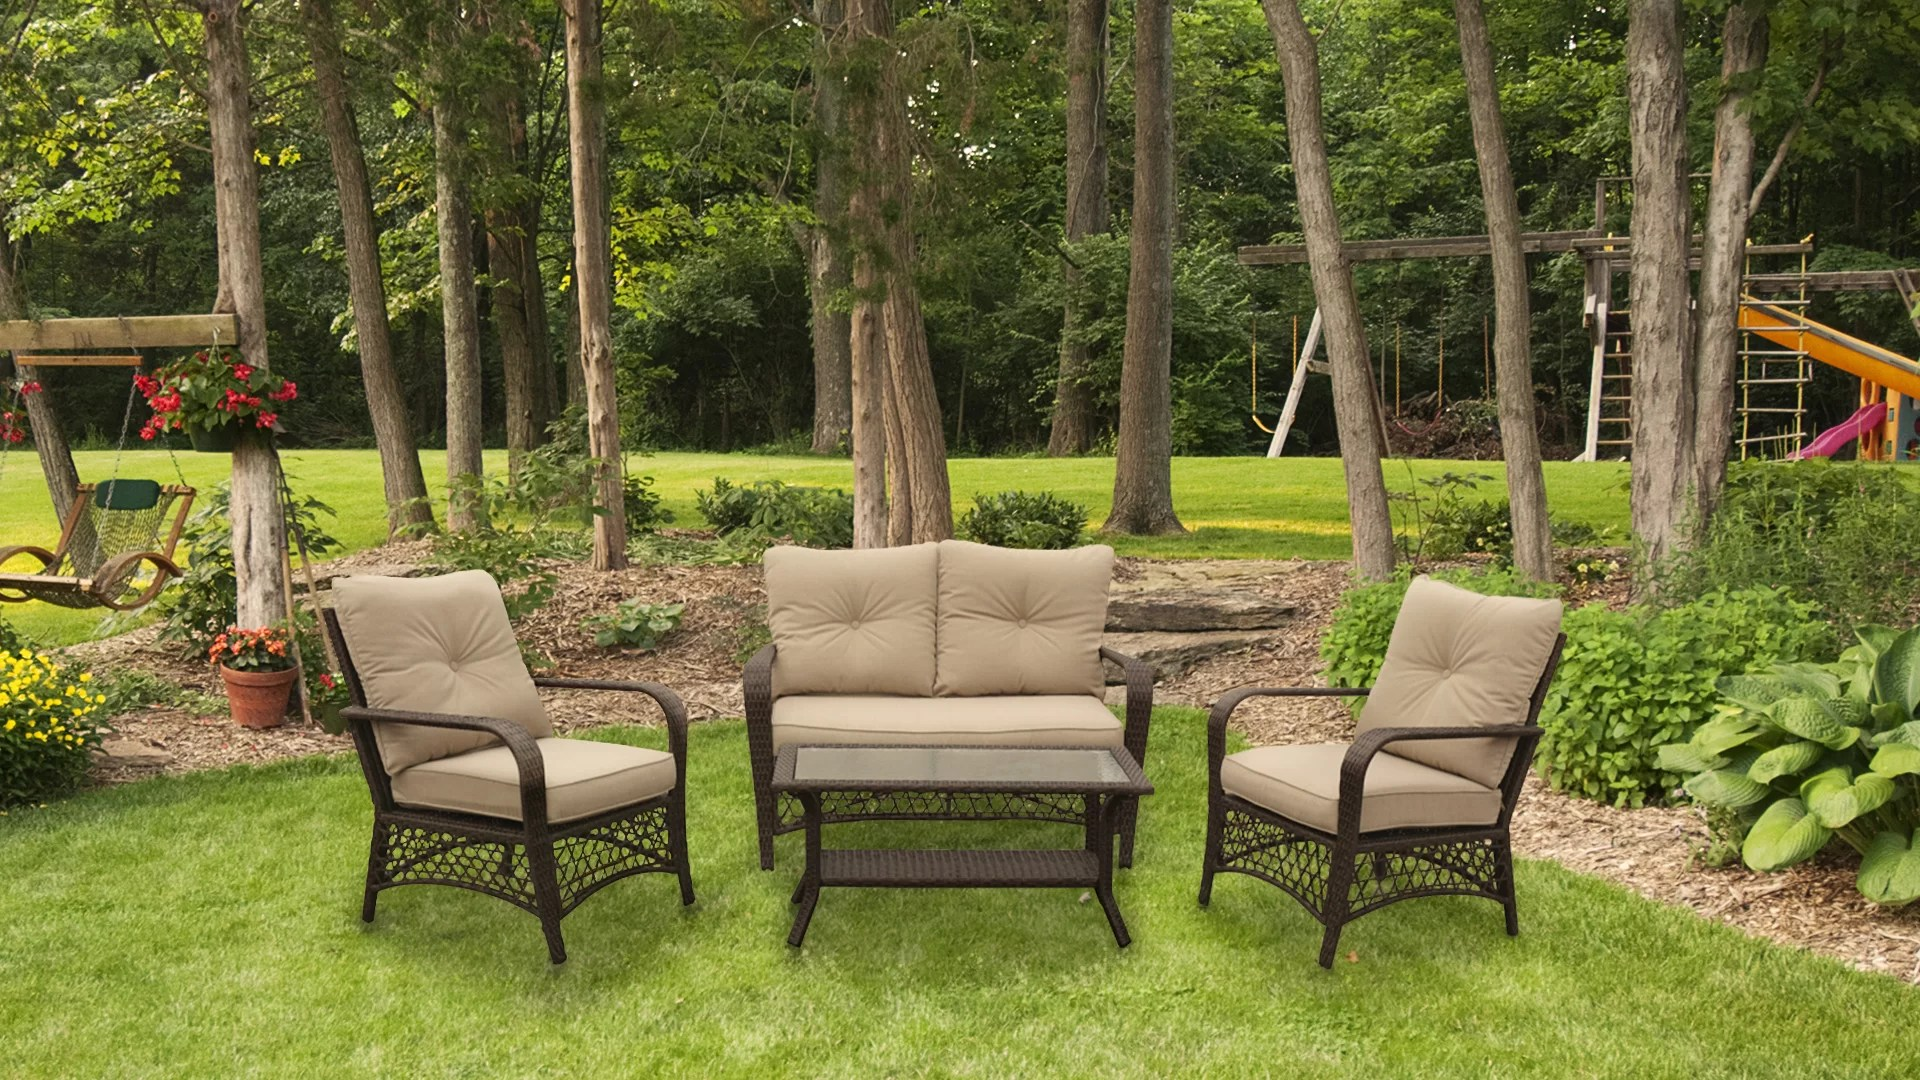 Outdoor Hartwig Hartwig 4 Piece Rattan Sofa Seating Group With Cushion